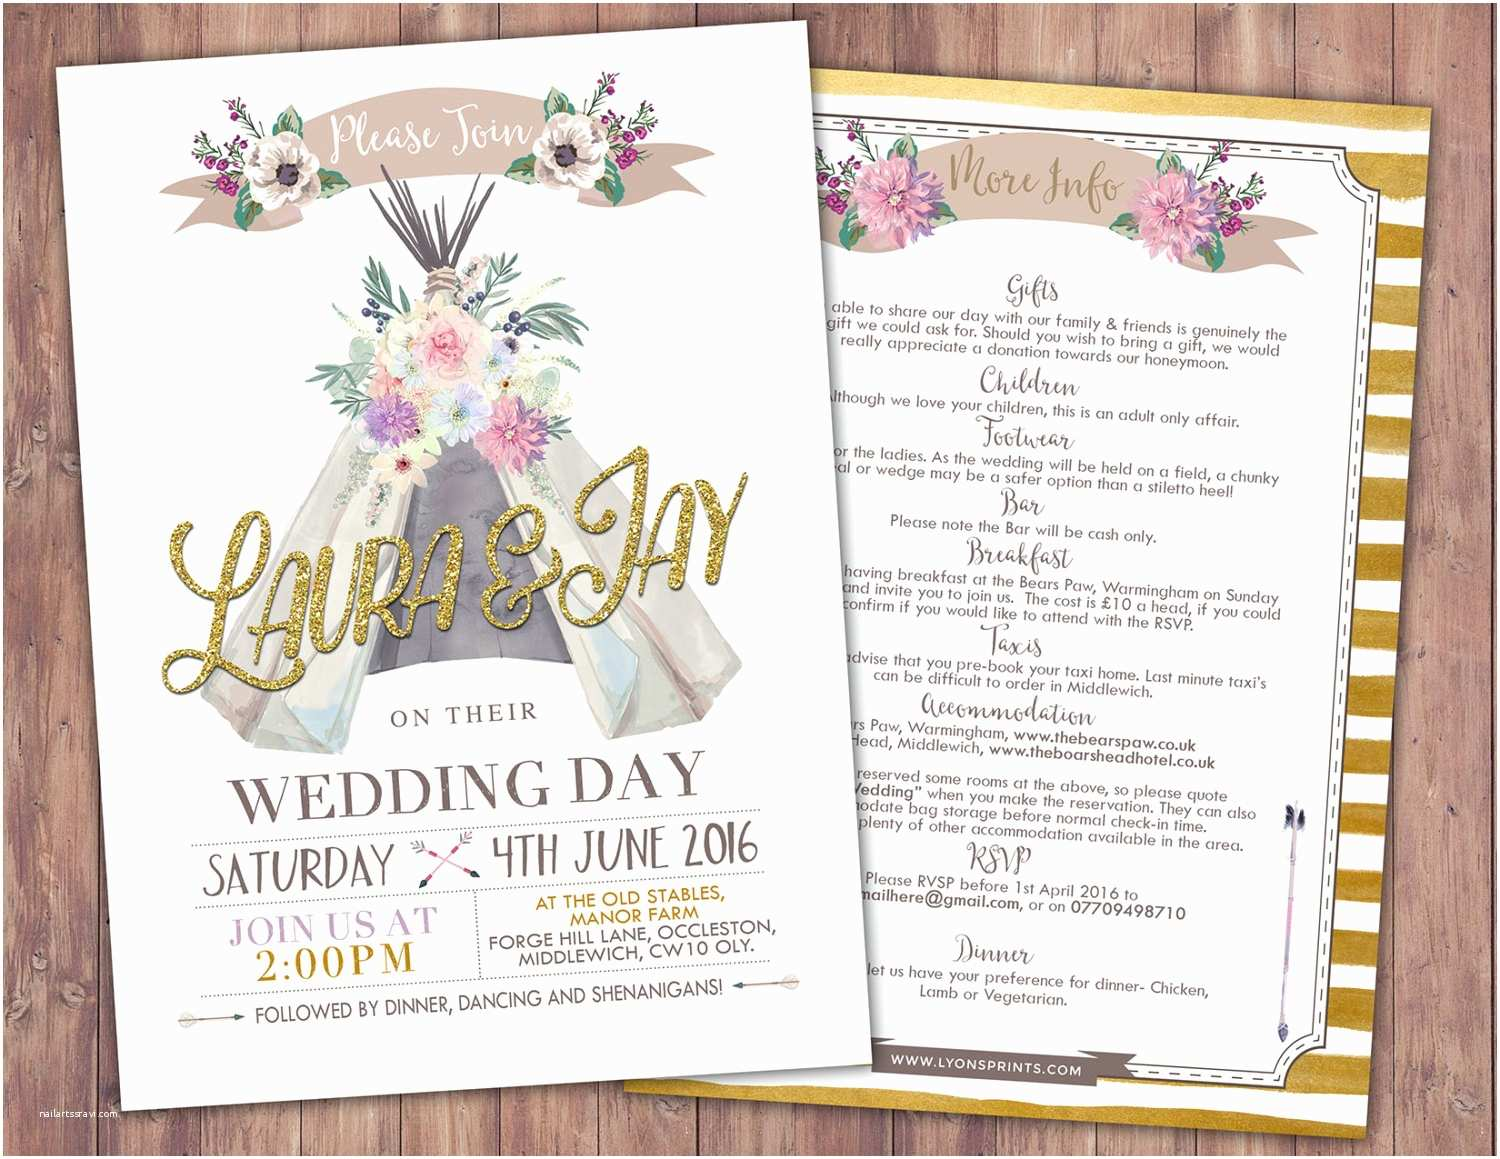 Wedding Invitation with Photos Of Couples Free Boho Wedding Invitation Teepee Invitation Invitation